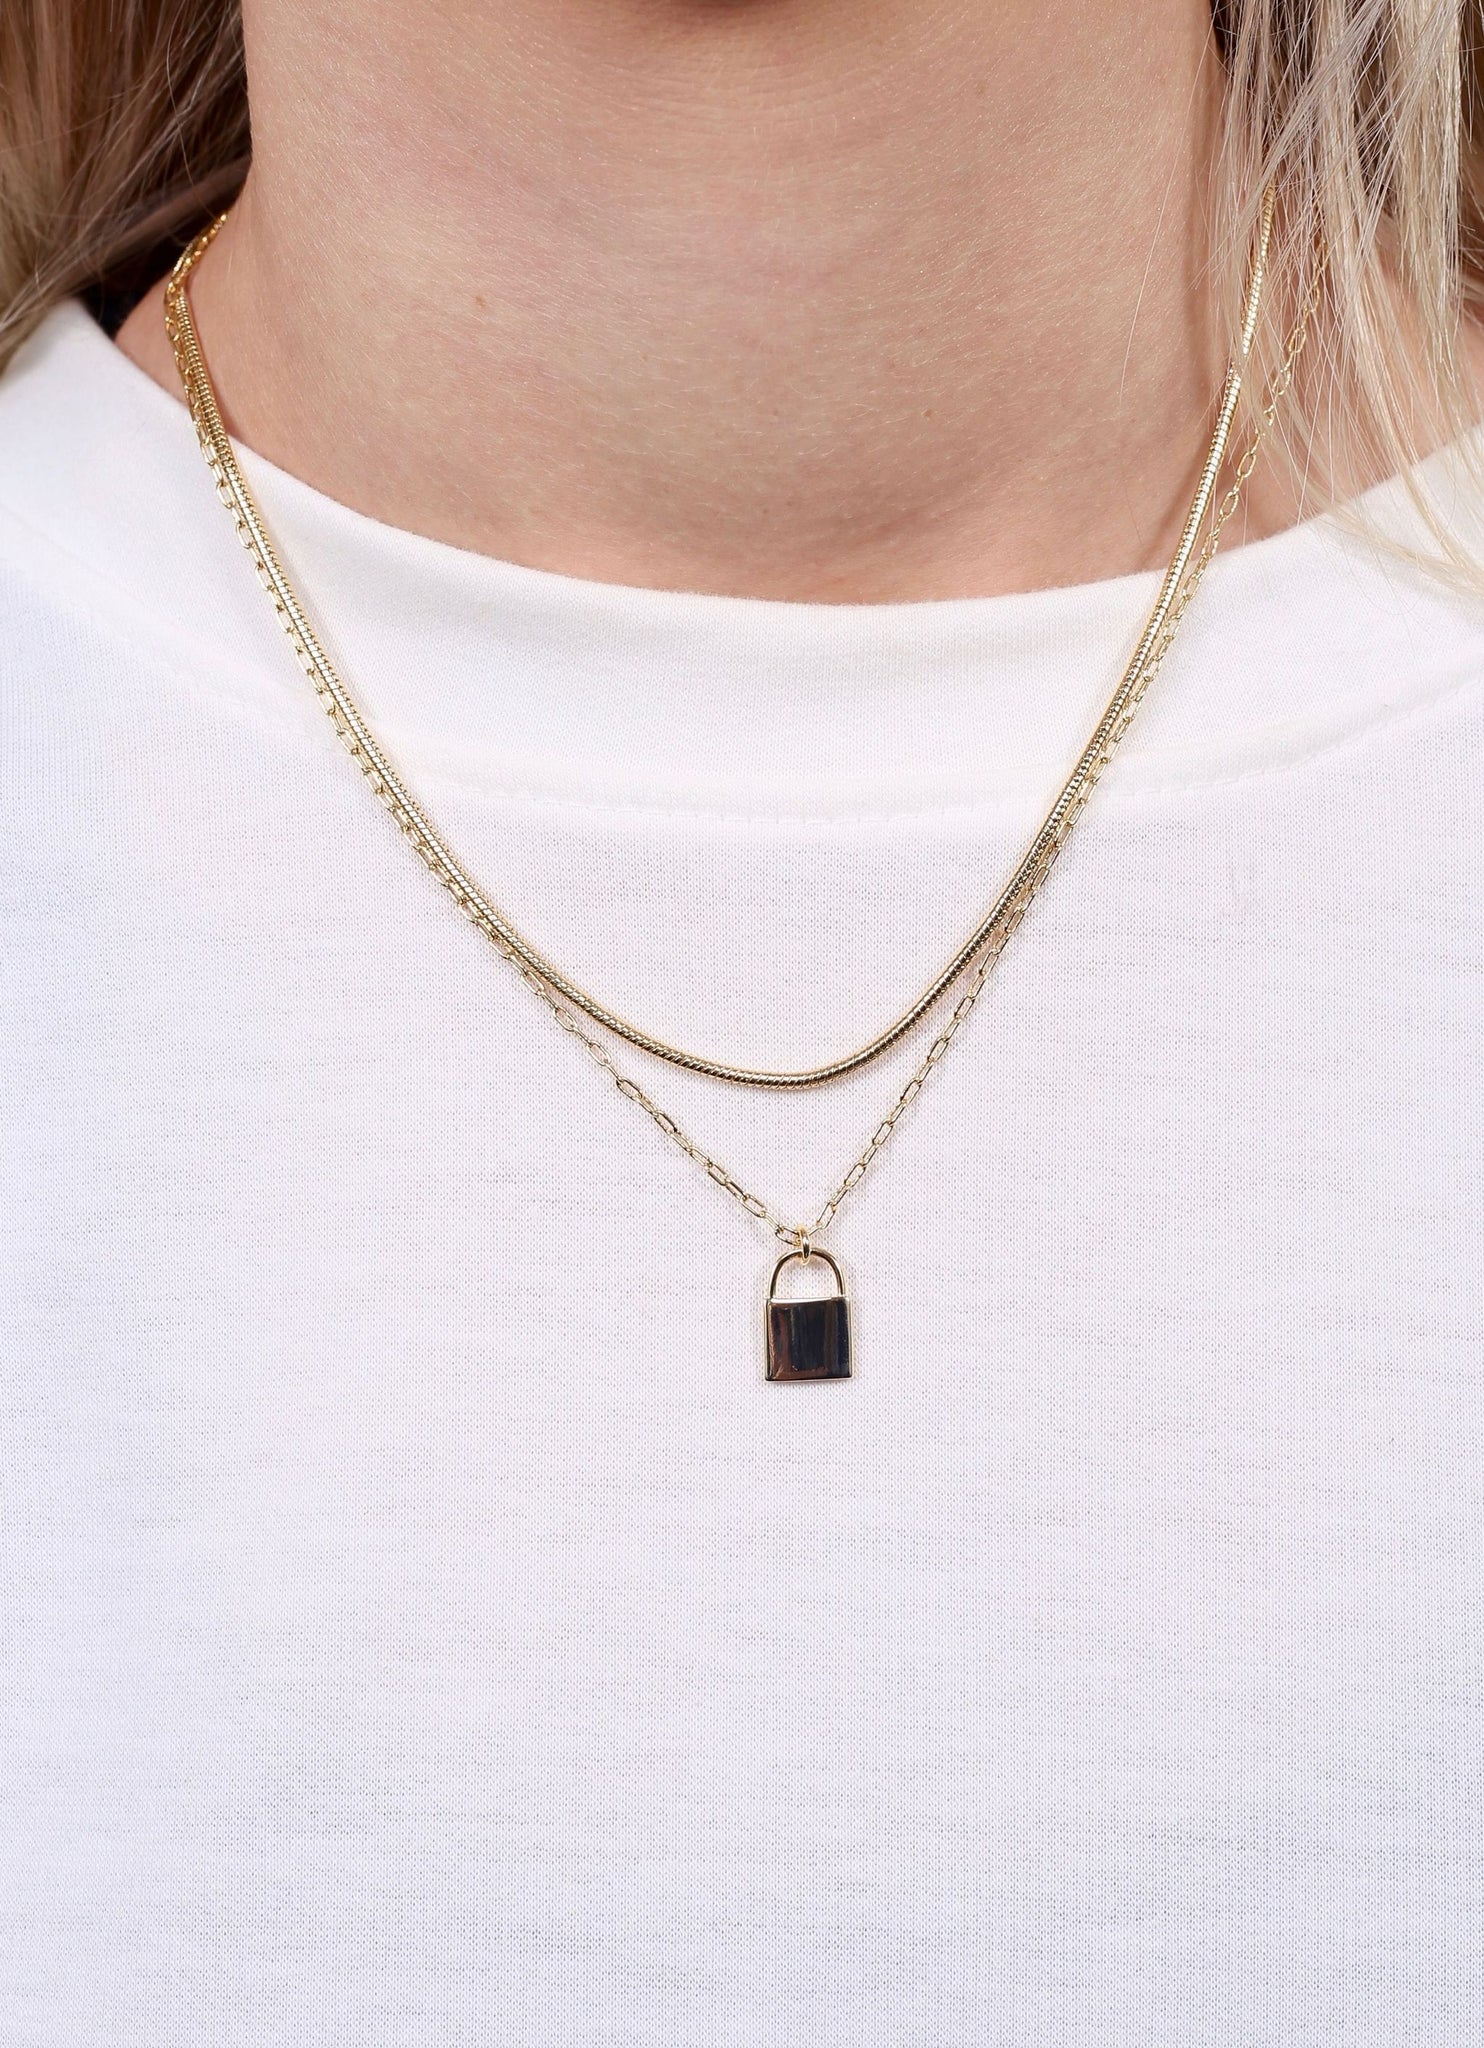 Gold Lock Charm Layered Necklace